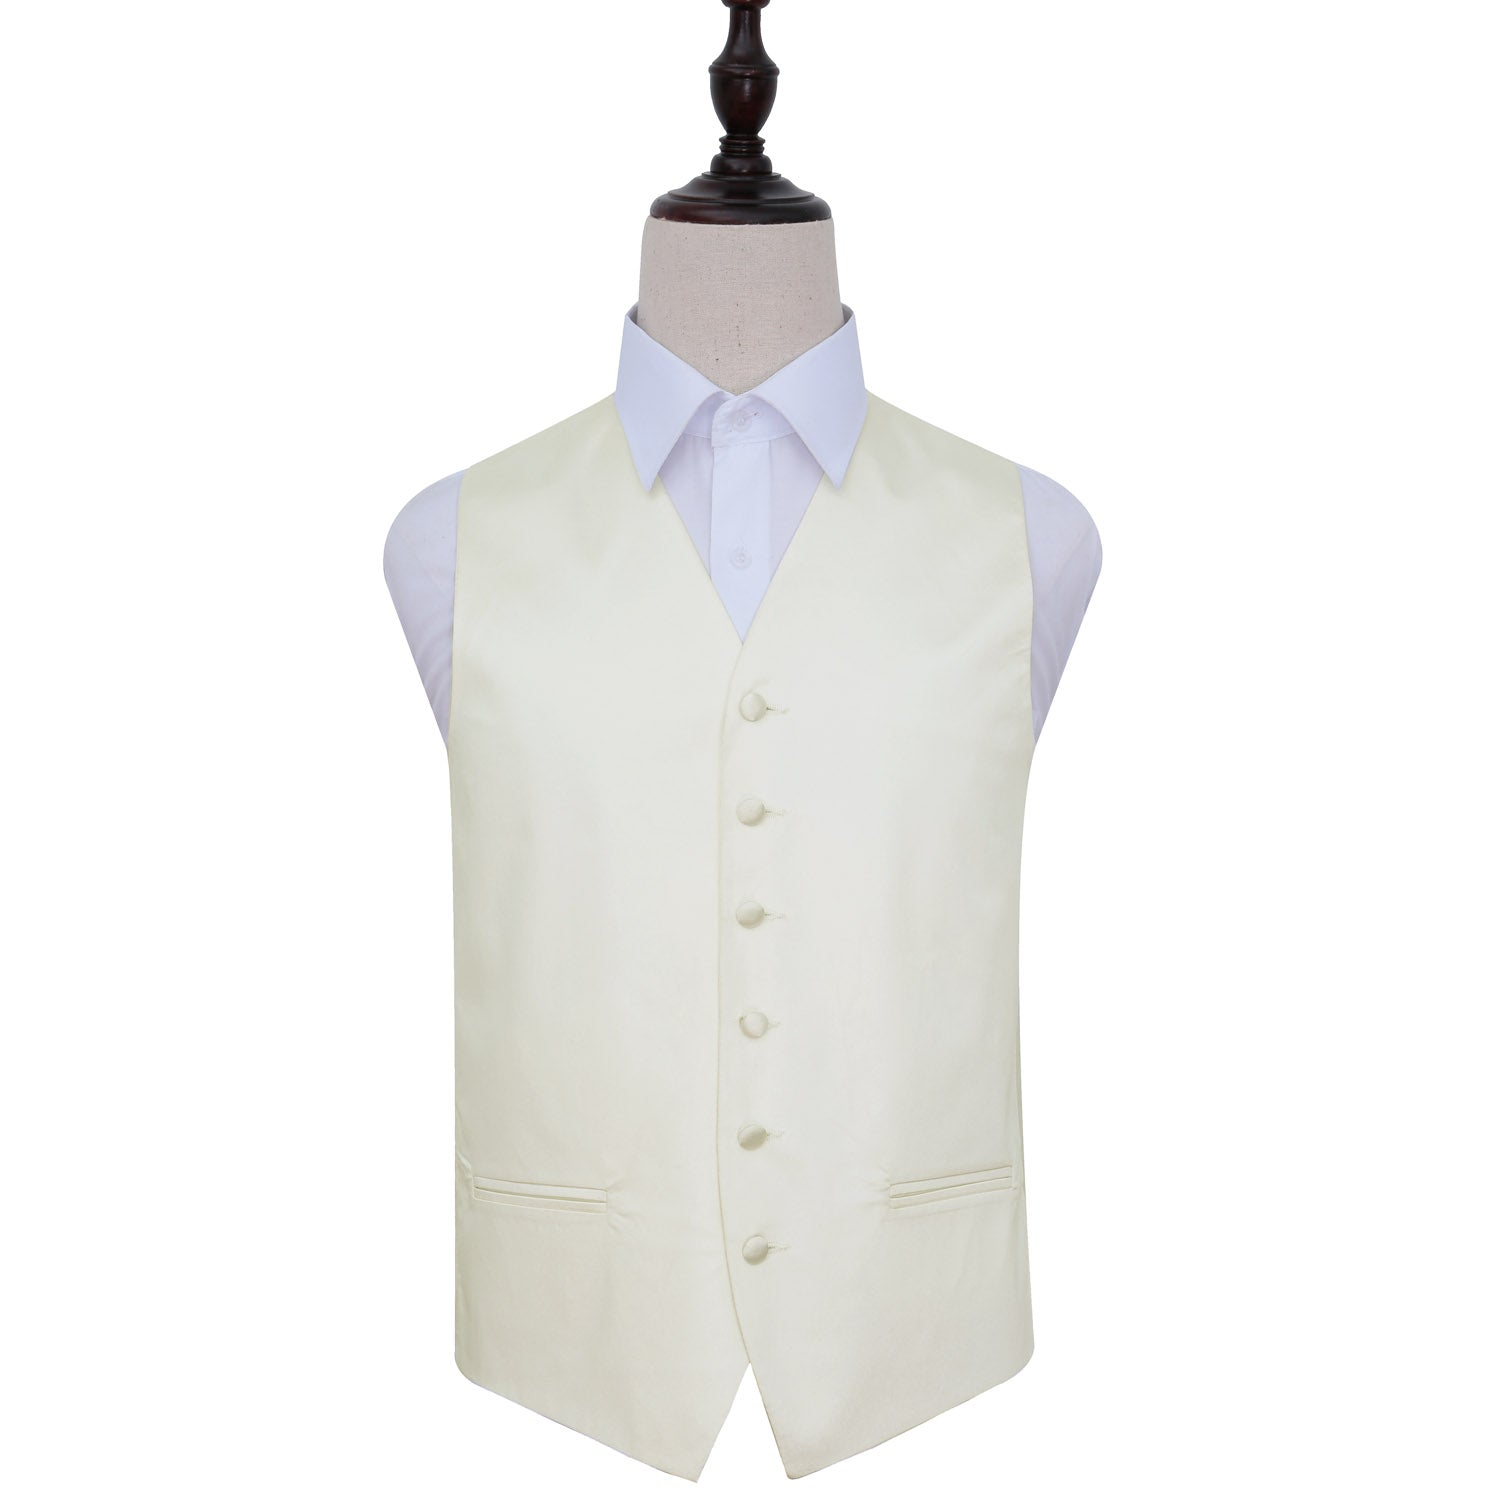 Plain Satin Waistcoat - Ivory, 46', Clothing by Low Cost Gifts